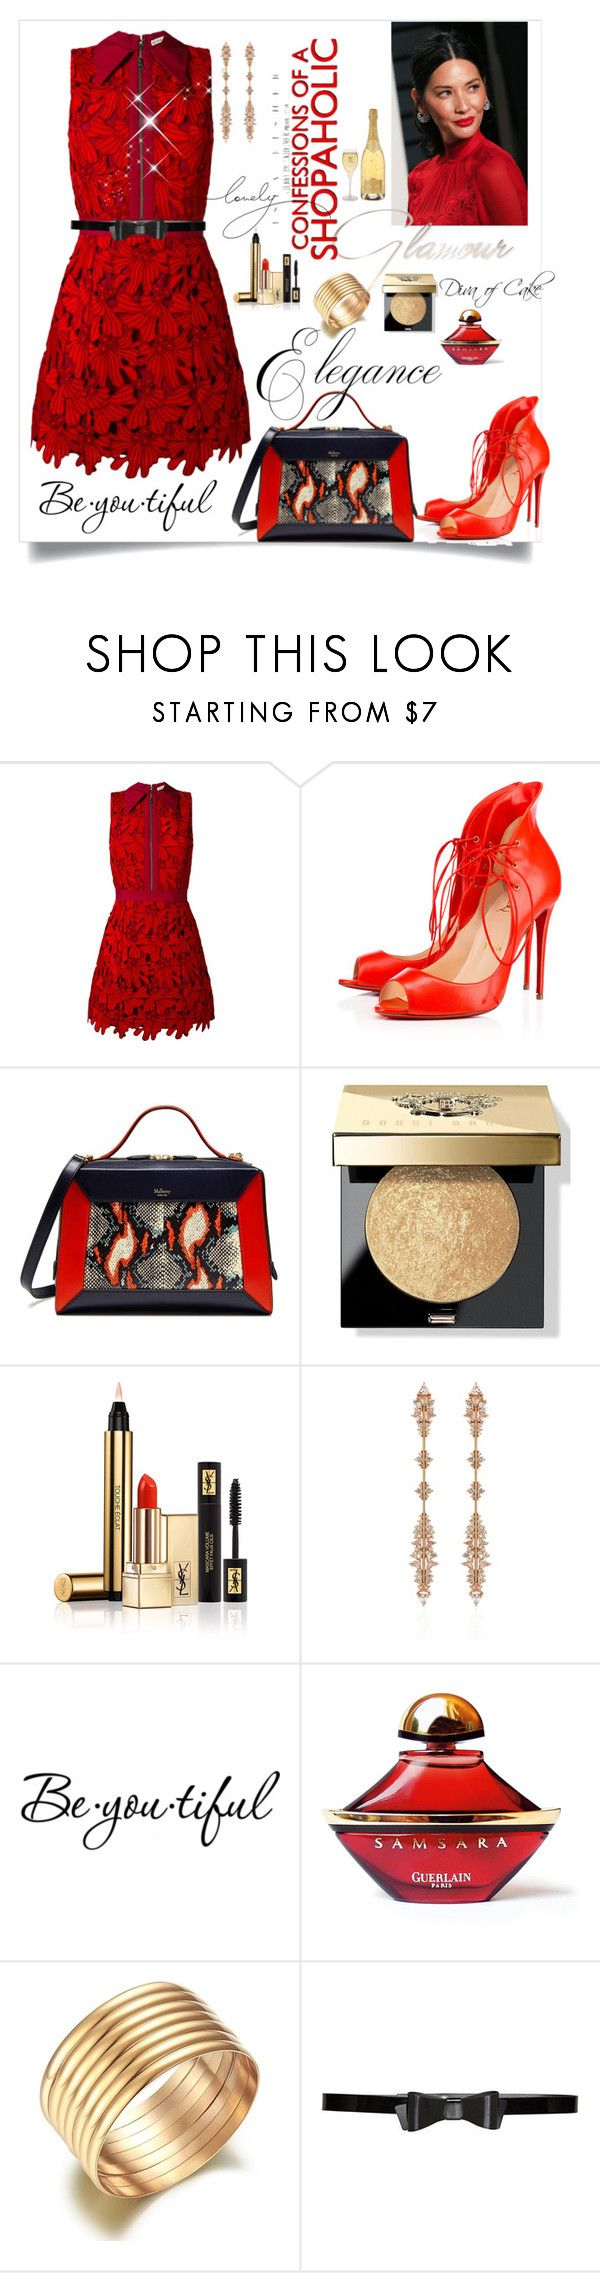 """Untitled #298"" by kercey ❤ liked on Polyvore featuring Alice + Olivia, Christian Louboutin, Mulberry, Bobbi Brown Cosmetics, Yves Saint Laurent, Fernando Jorge, Schone and Guerlain"